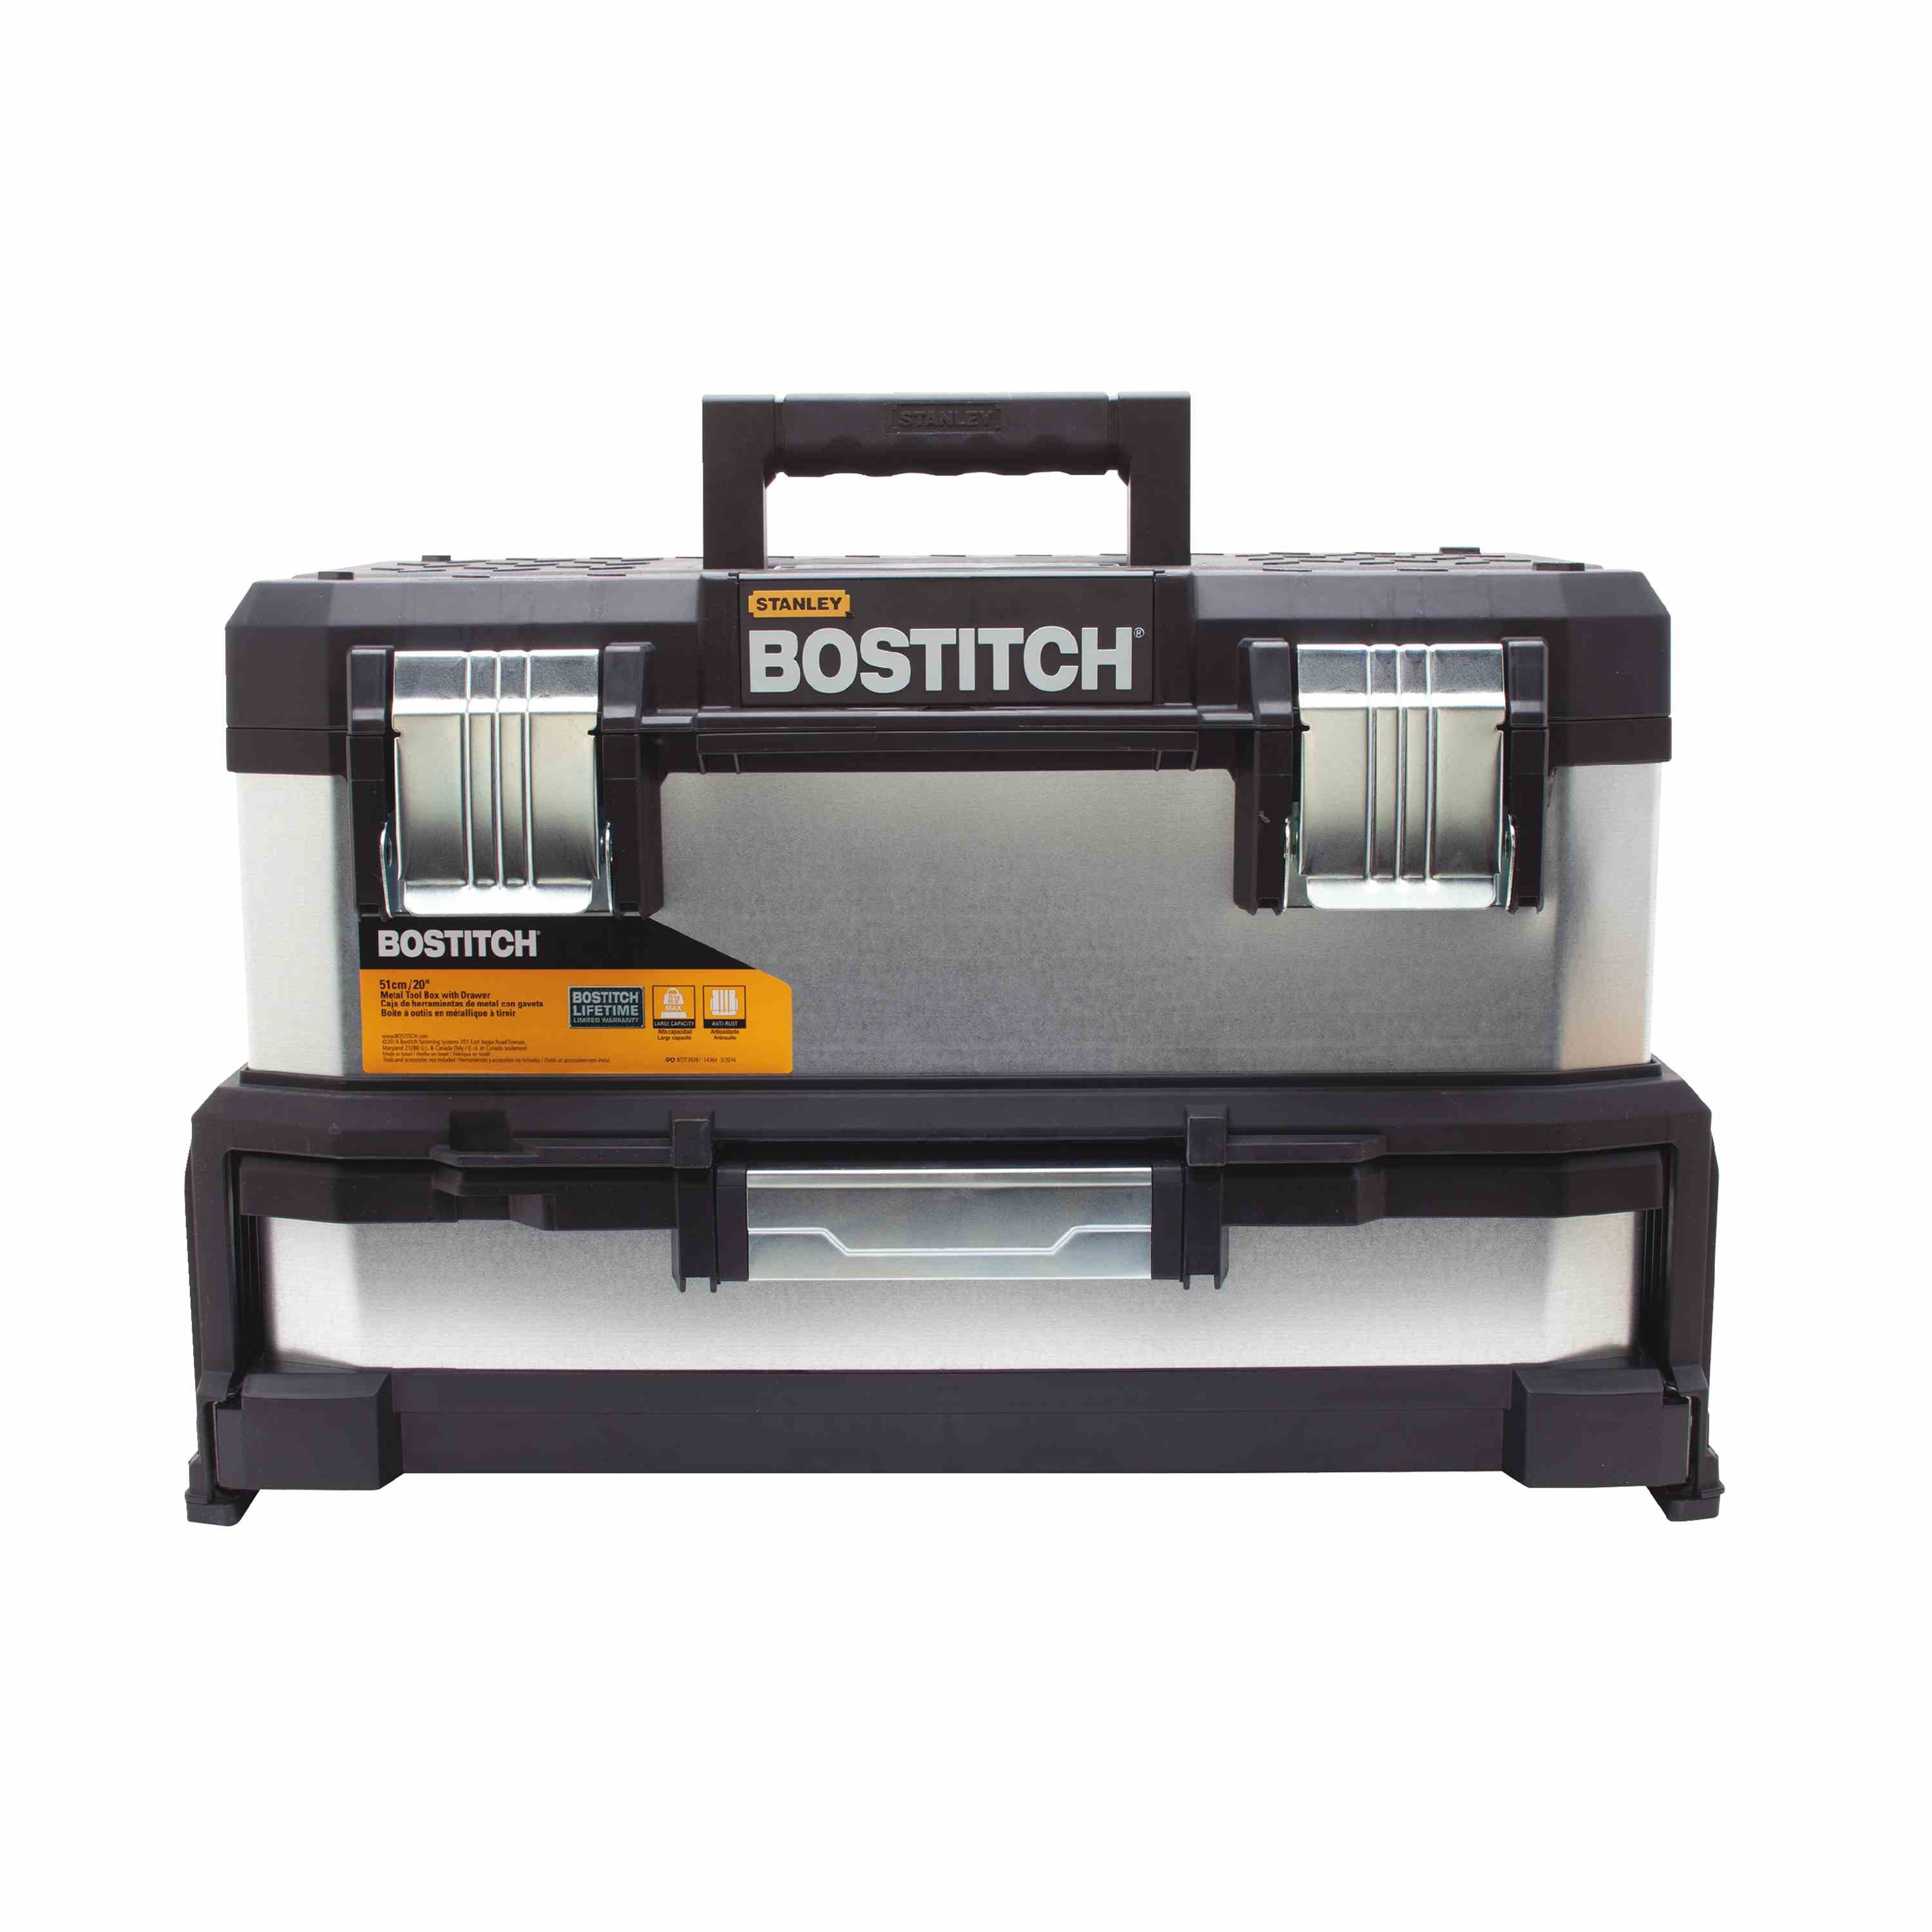 Bostitch - 20 in MetalPlastic Tool Box with Drawer - BTST20261